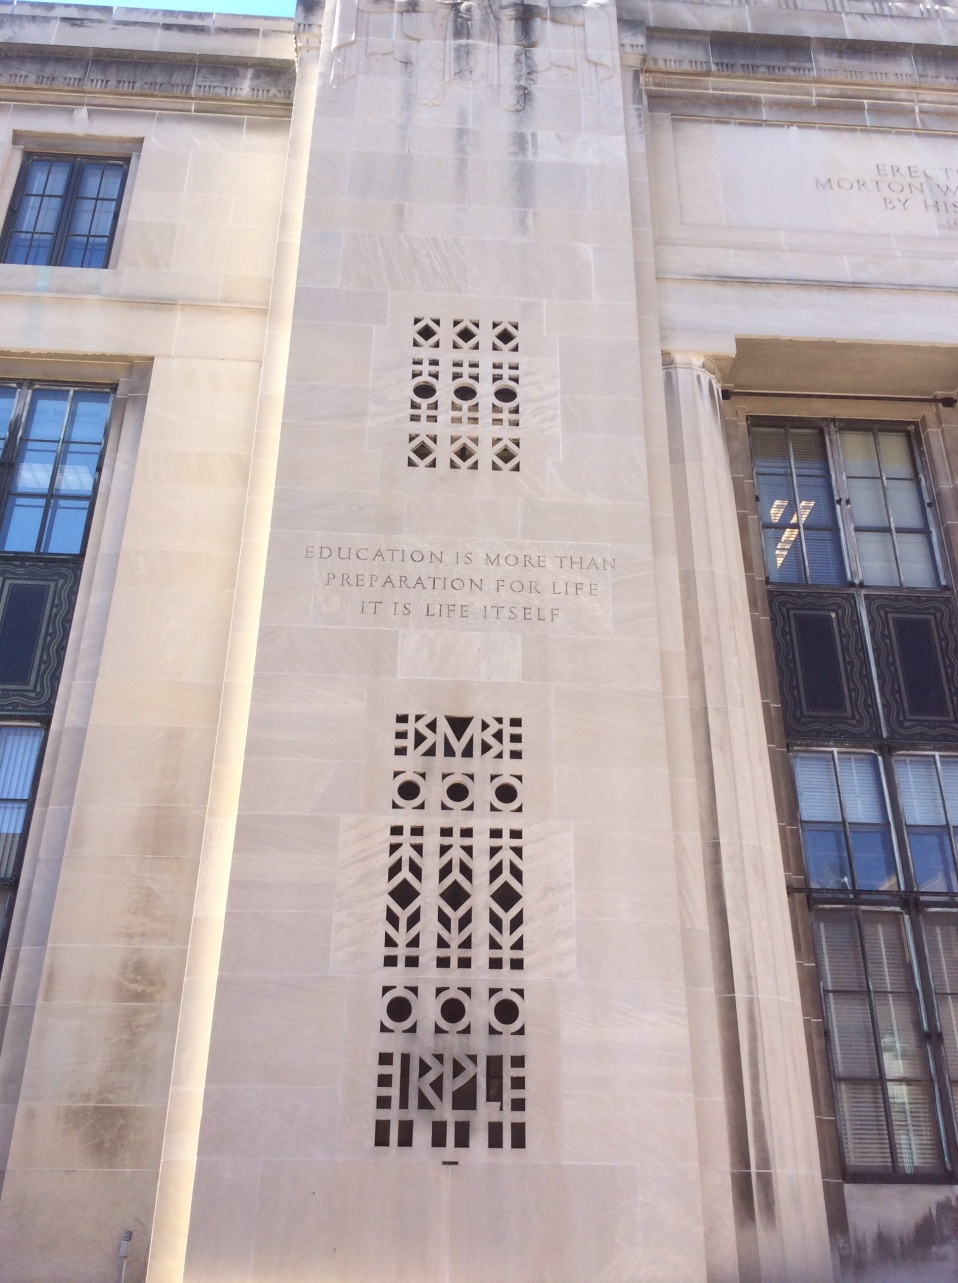 John Dewey quote inscribed on the Rundel Building of the Rochester Public Library, New York, photo 2016 by Amy Cools.jpg